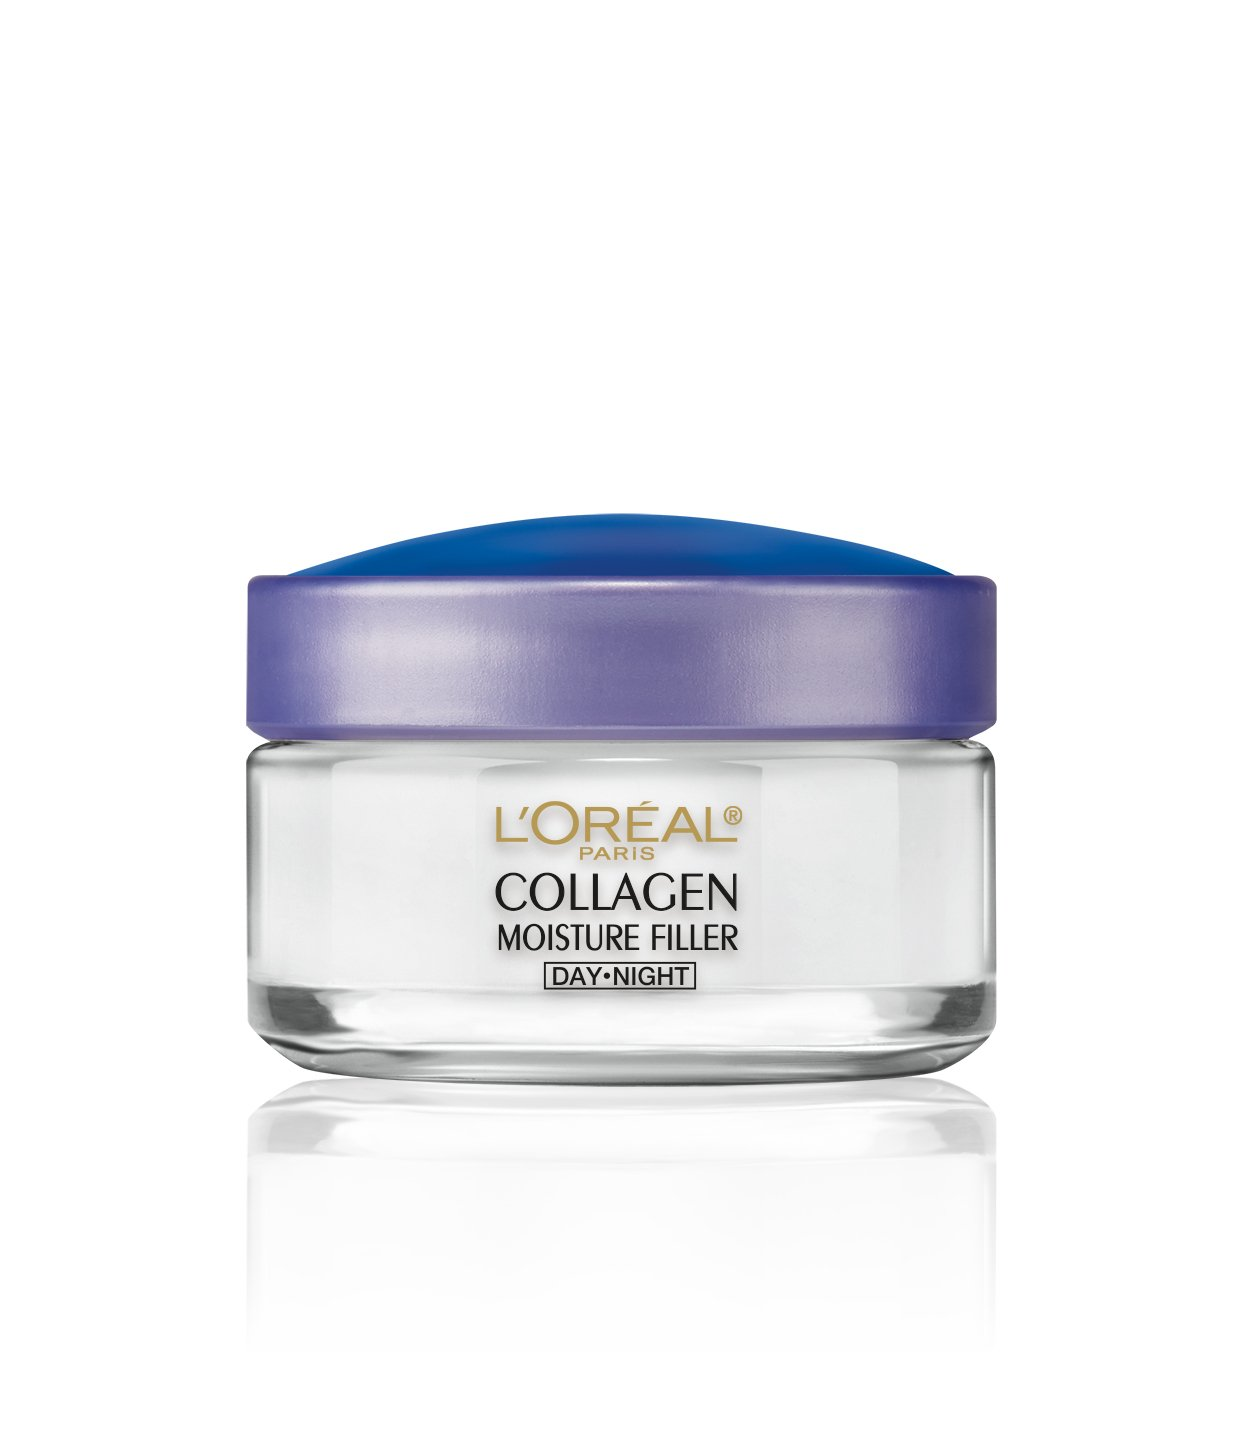 L'Oréal Paris Skincare Collagen Face Moisturizer, Day and Night Cream Collagen Moisture Filler, 2 count L' Oreal - Skincare 071249152874